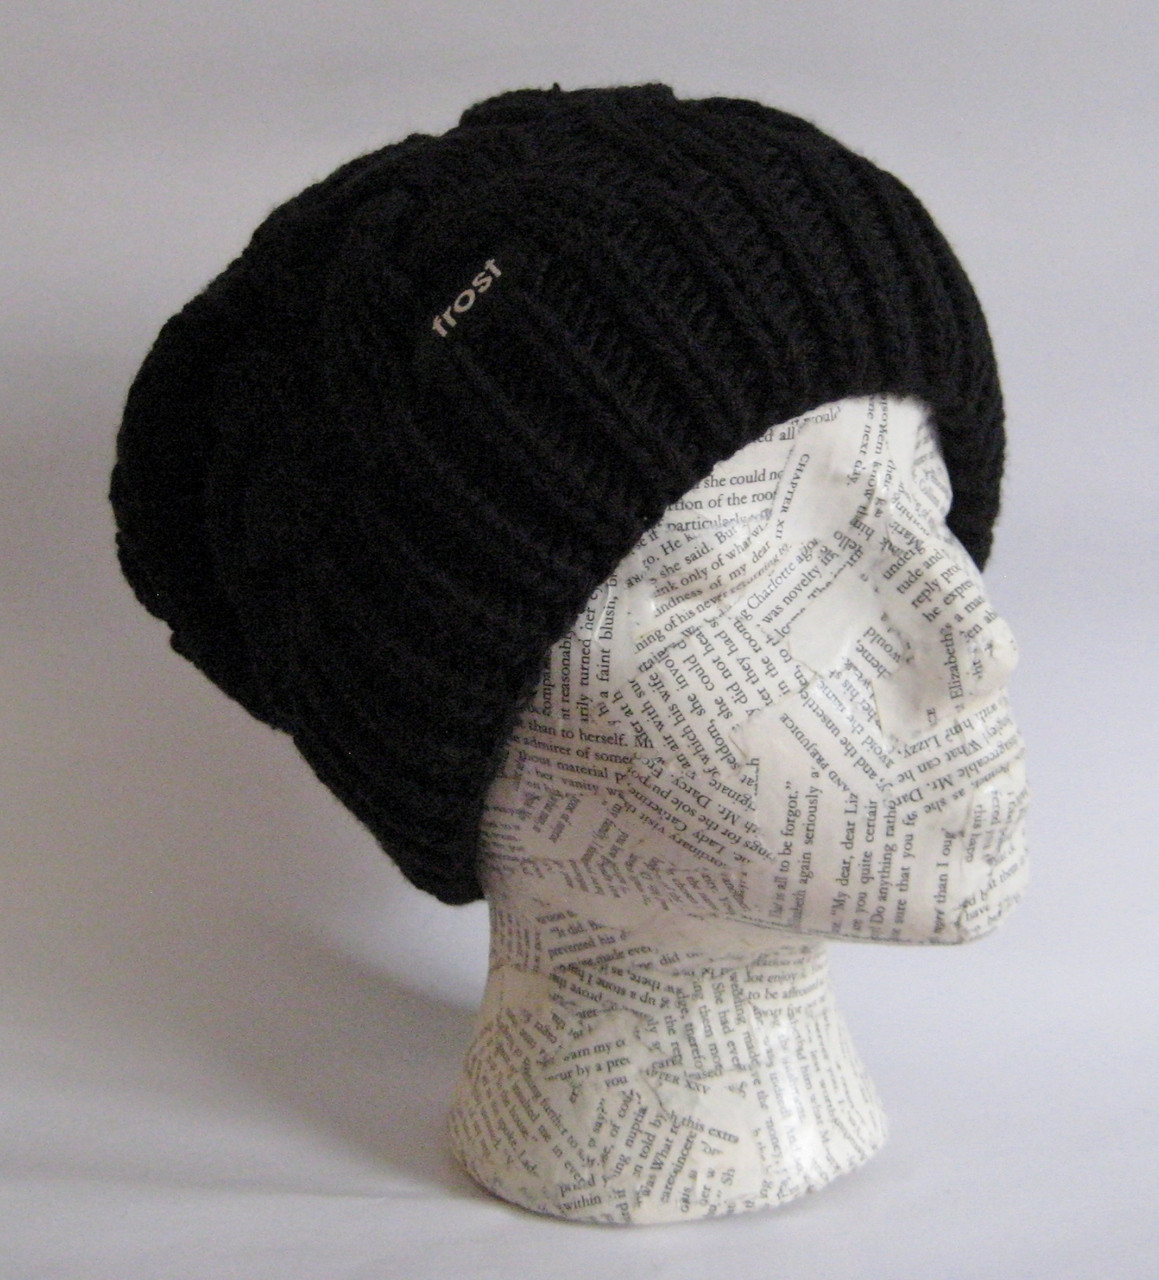 73dbfafaa37 Slouchy winter hat for women. Loading zoom